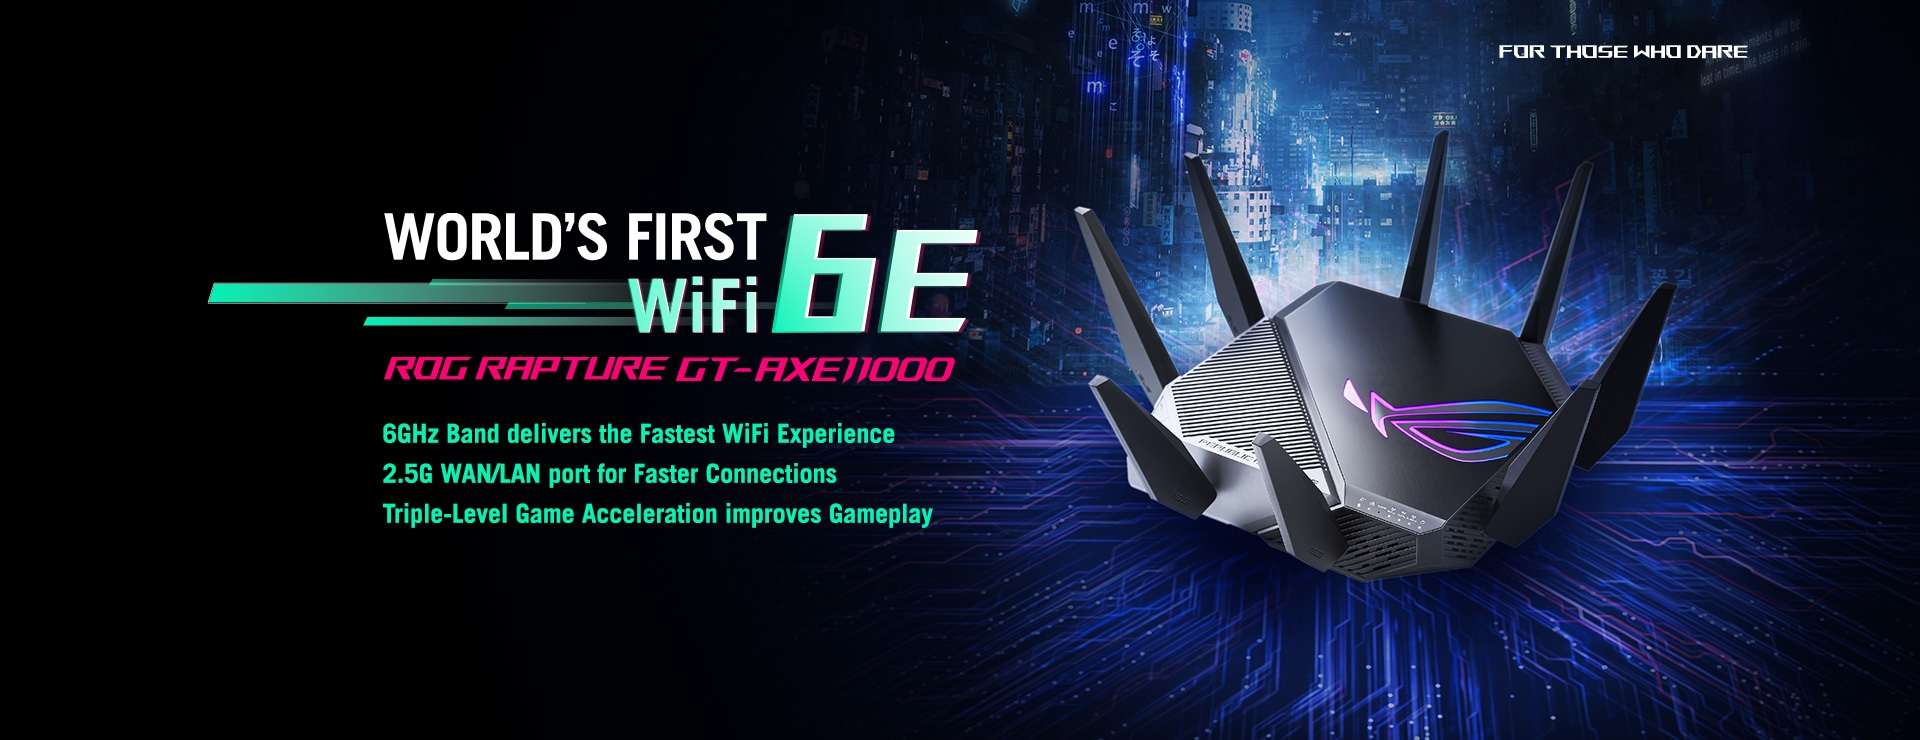 ROG Rapture GT-AXE11000